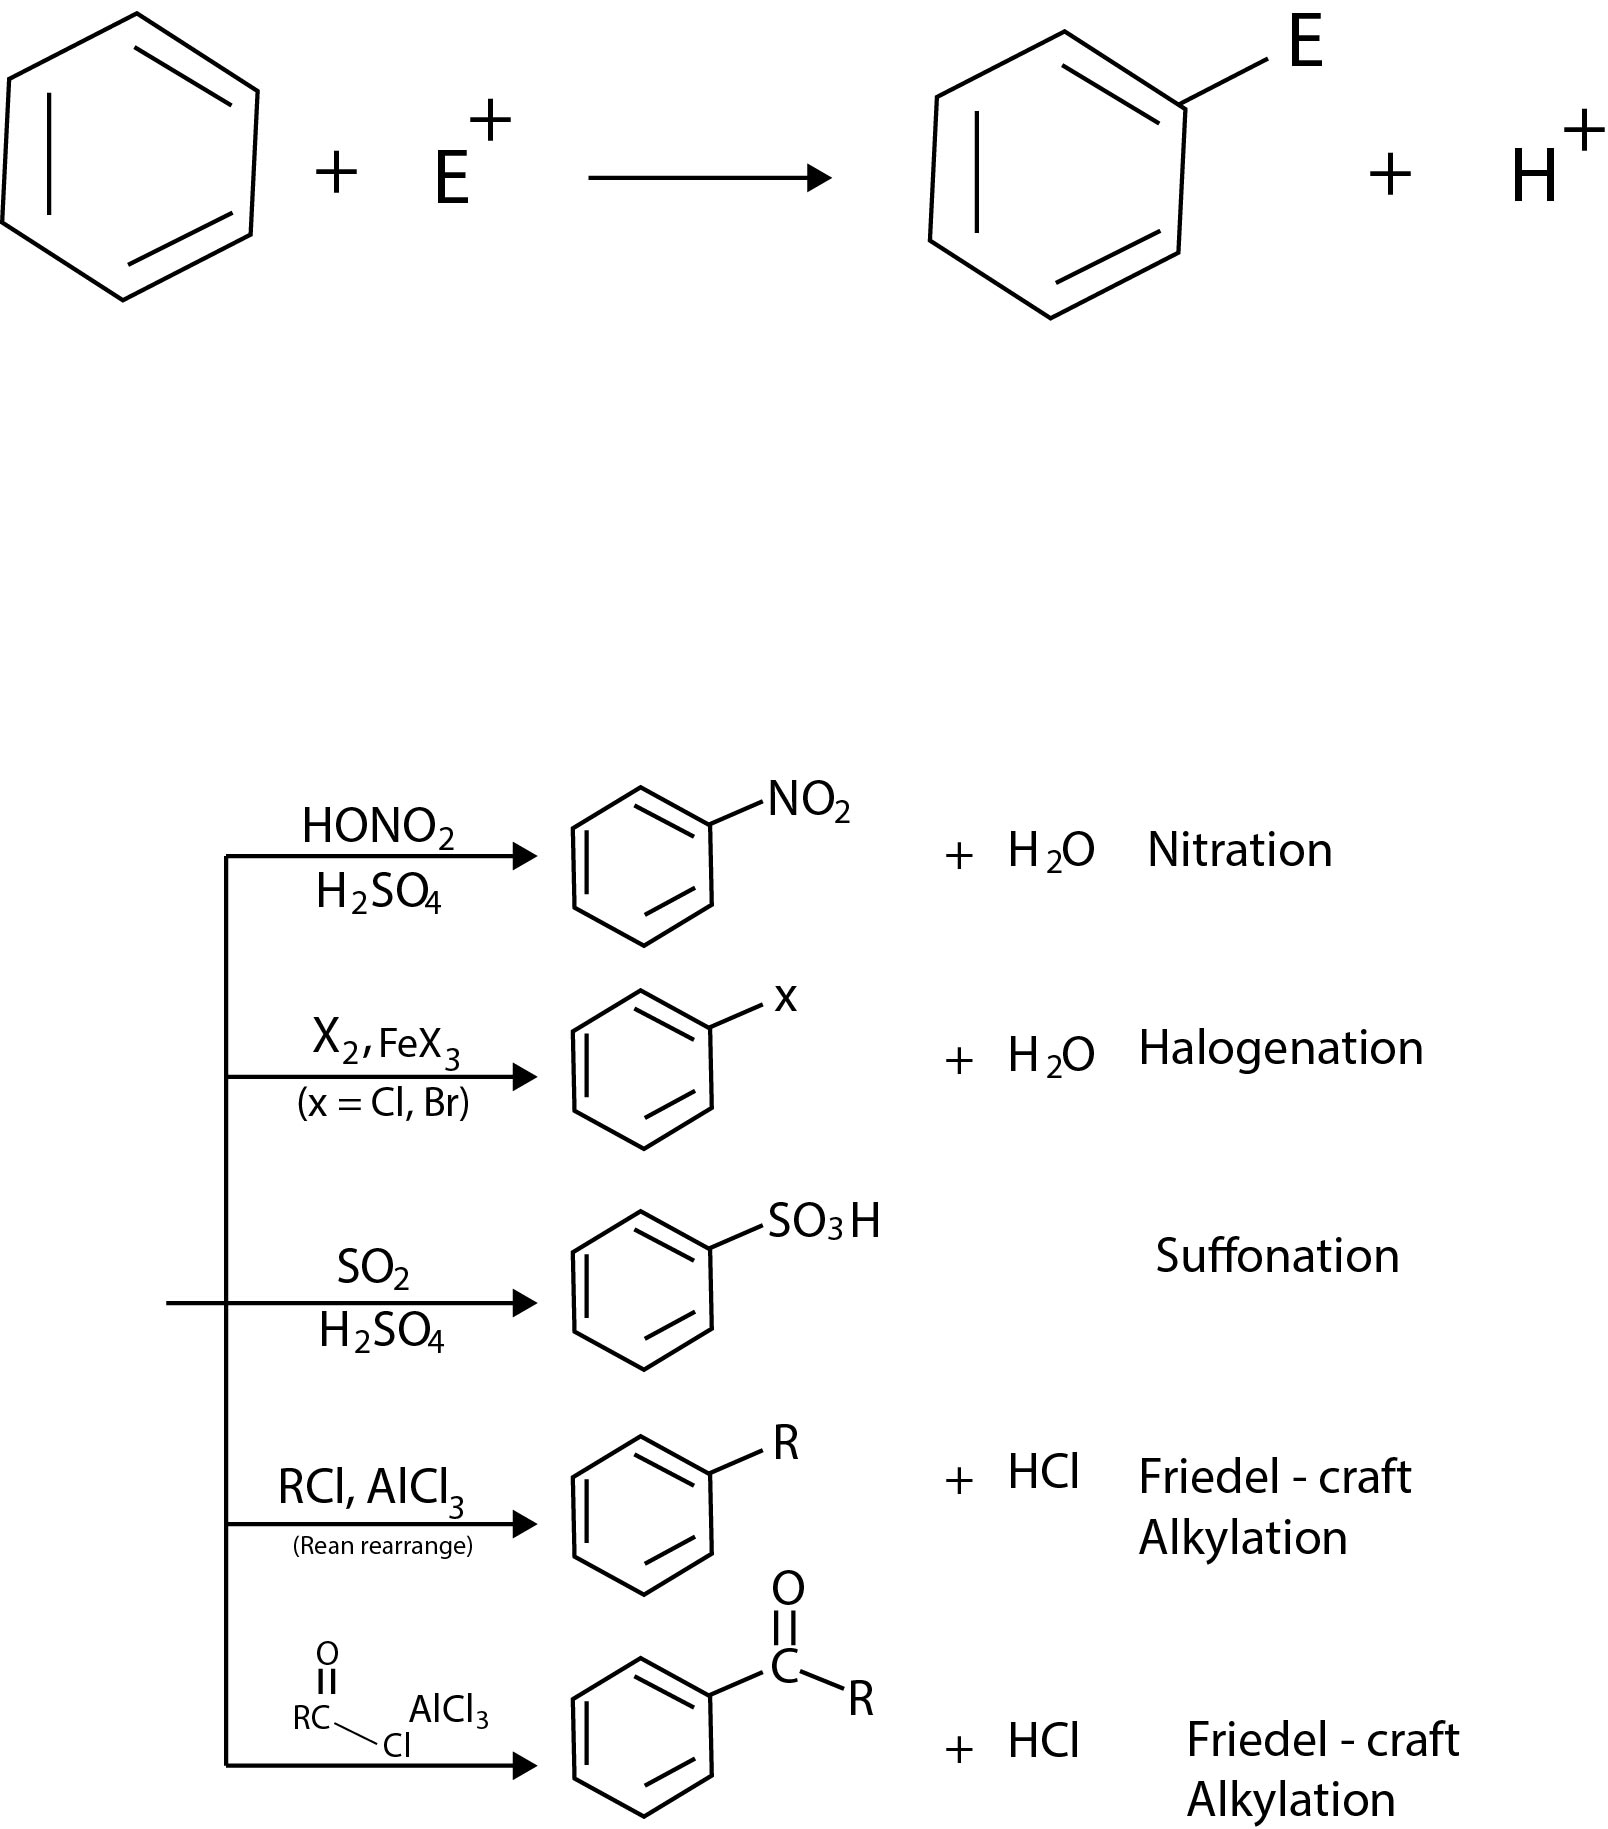 a paper on aromatic hydrocarbons Chapter 8 - alkenes, alkynes and aromatic polycyclic aromatic hydrocarbons 15 85 geometric isomers 18 opening essay.